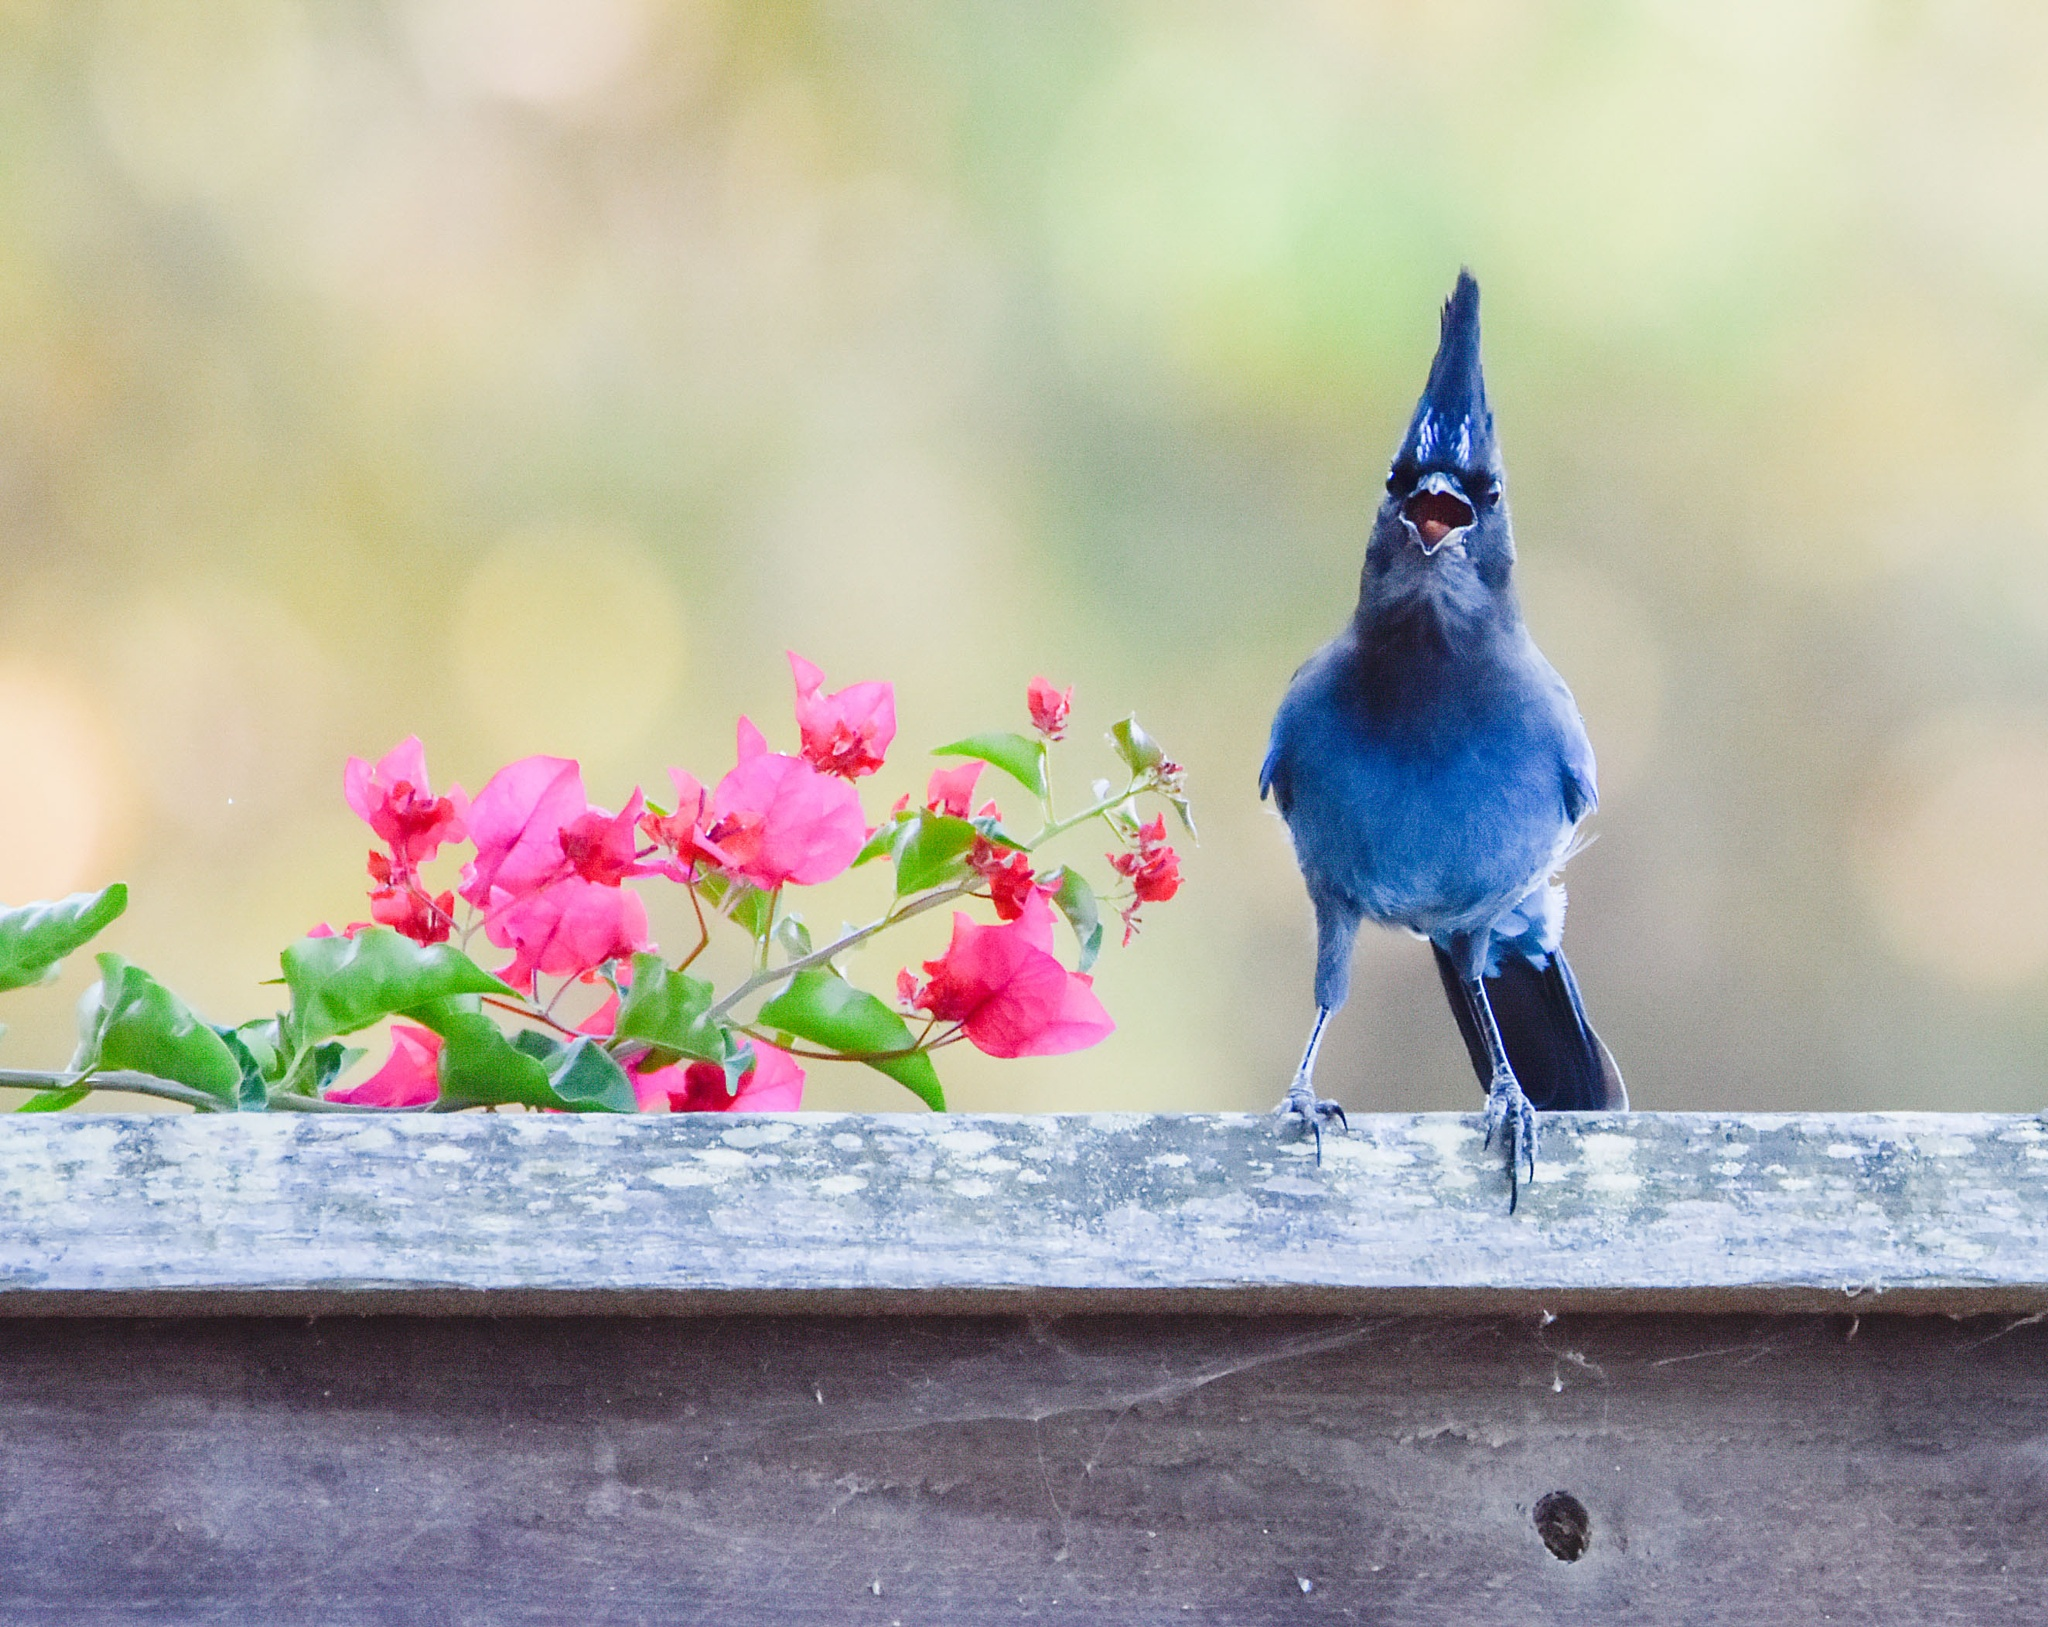 steller's jay sing song by Judy Tseng